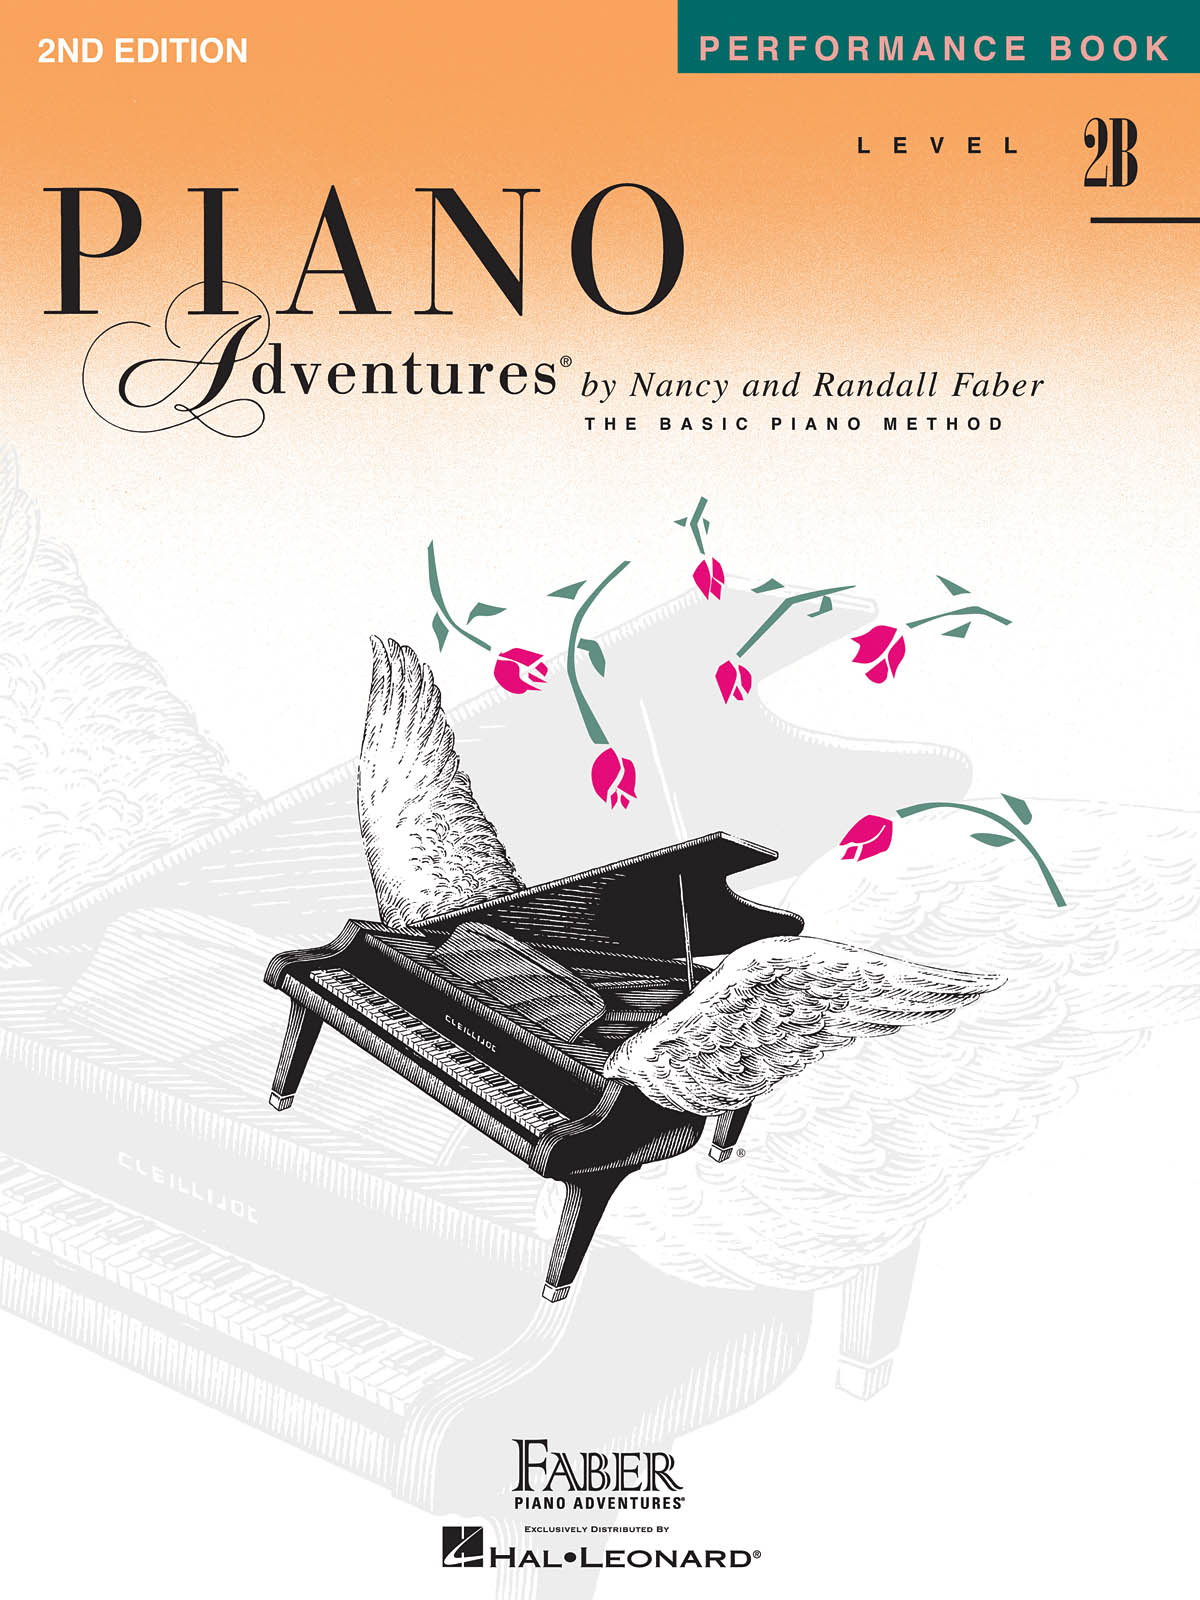 Nancy Faber Randall Faber: Level 2B - Performance Book - 2nd Edition: Piano: